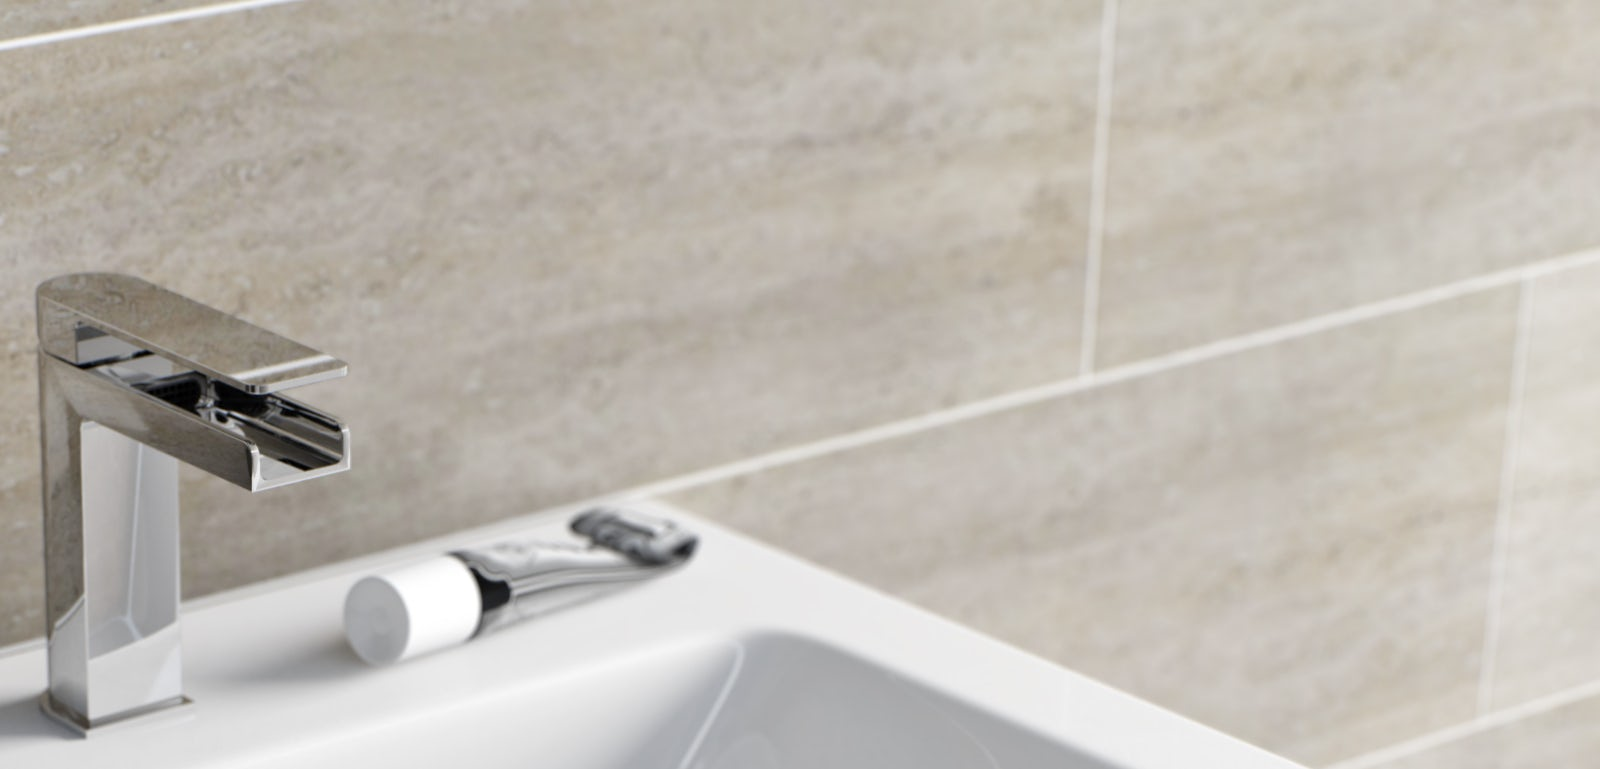 How to fit bathroom tiles - How To Fit Bathroom Tiles